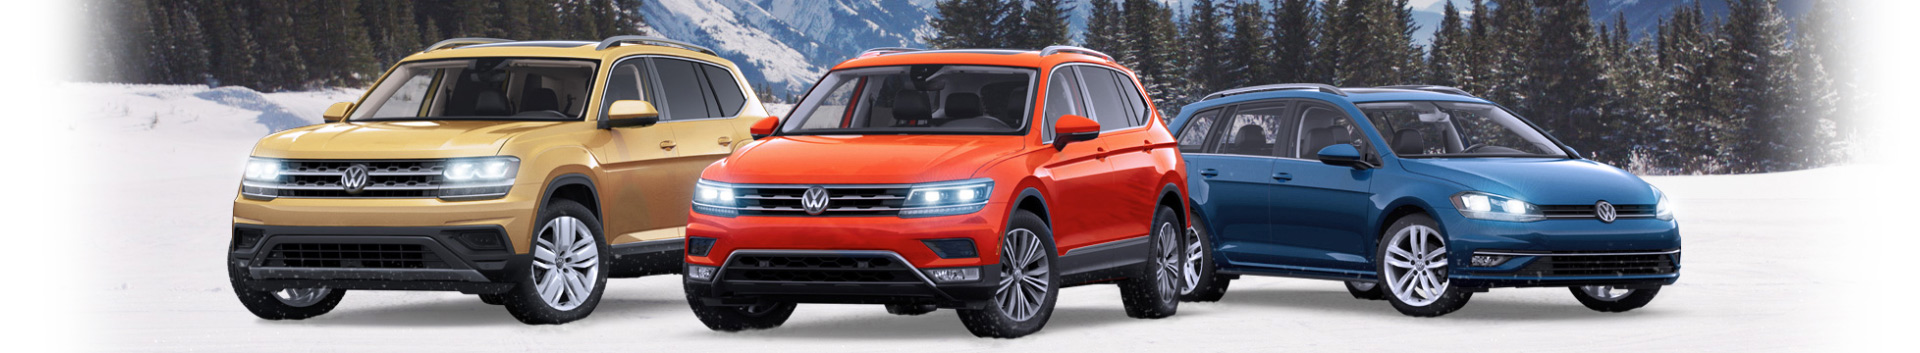 Volkswagen Inventory Blowout